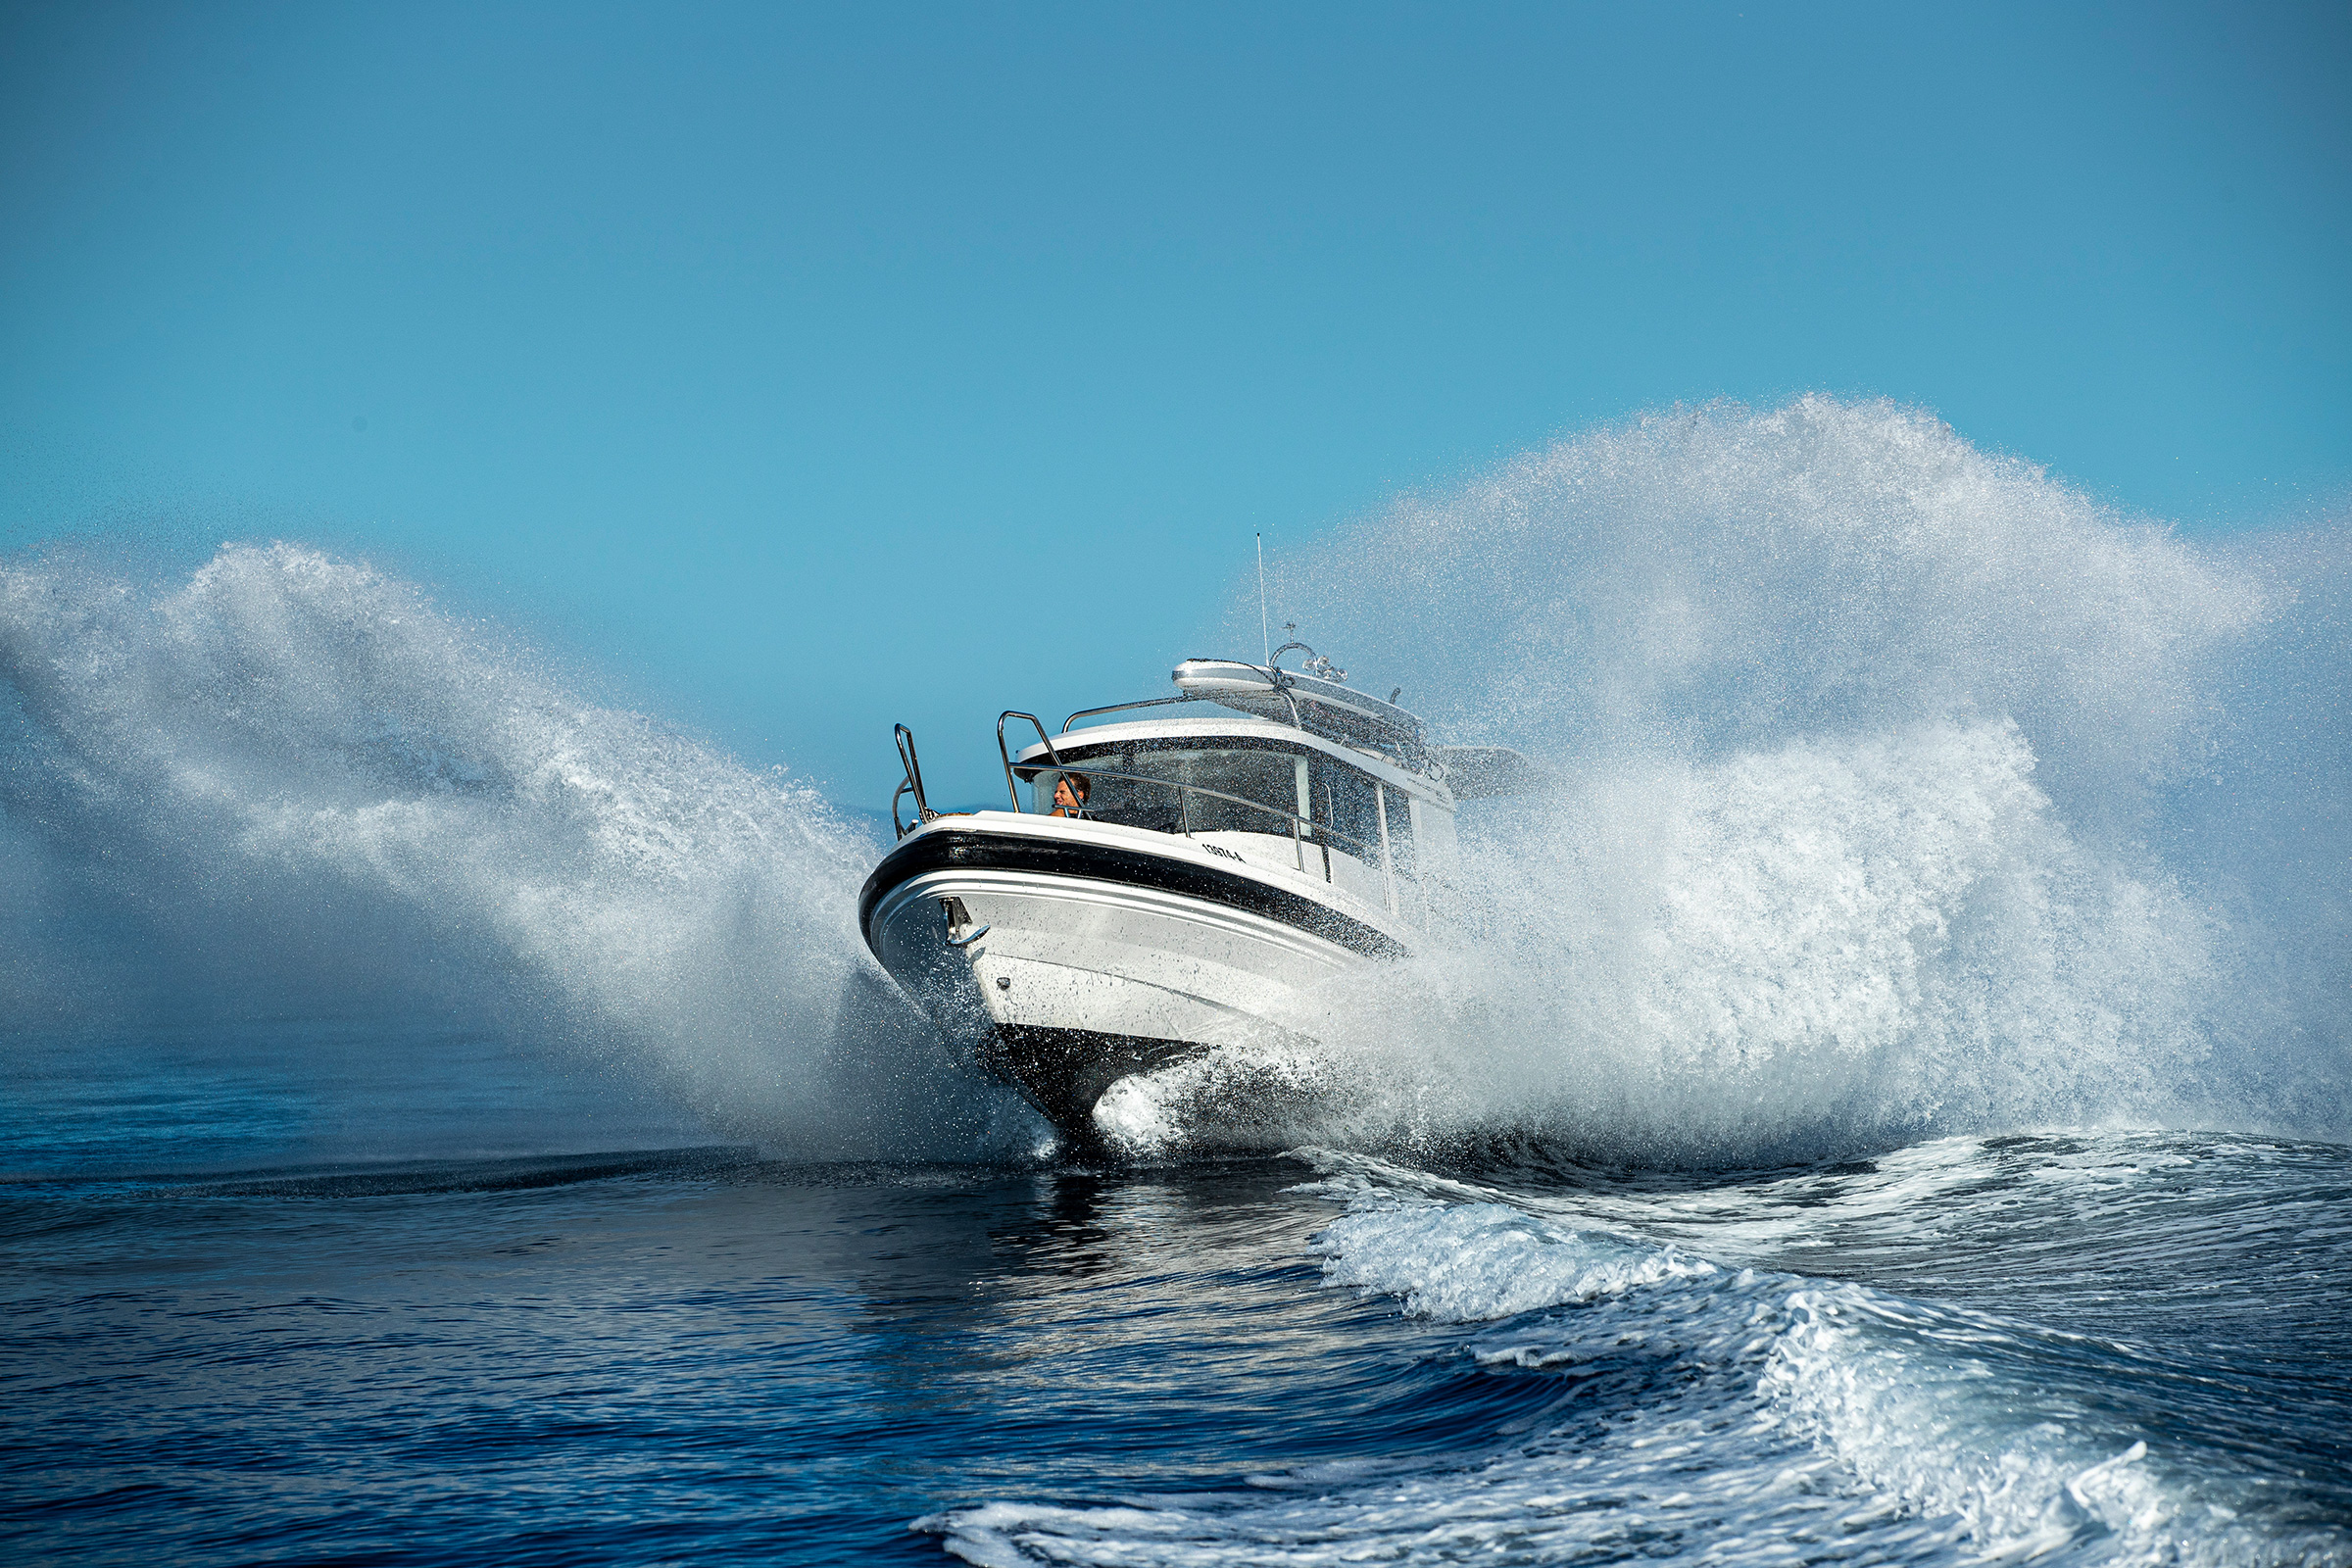 A Paragon 31 Cabin motorboat out on the sea